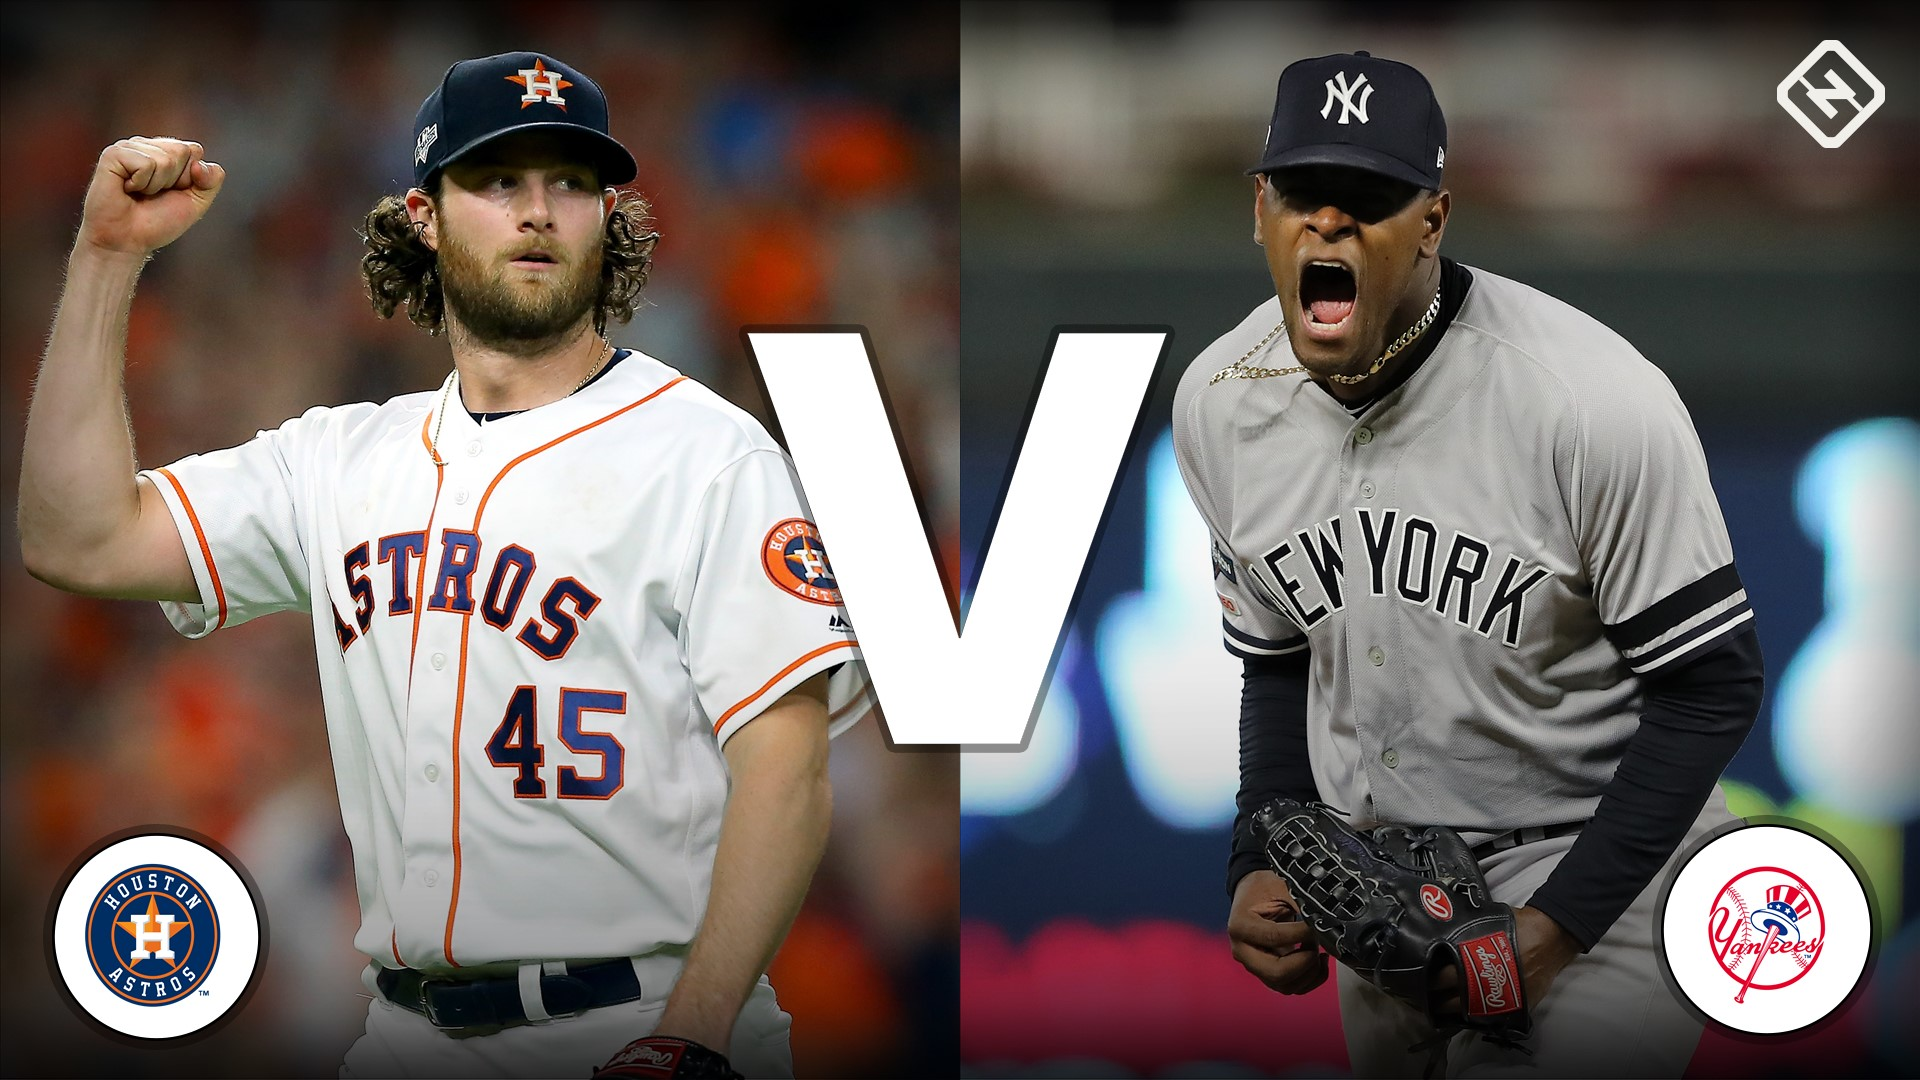 ALCS 2019 preview: Who has the edge in Yankees vs. Astros rematch?